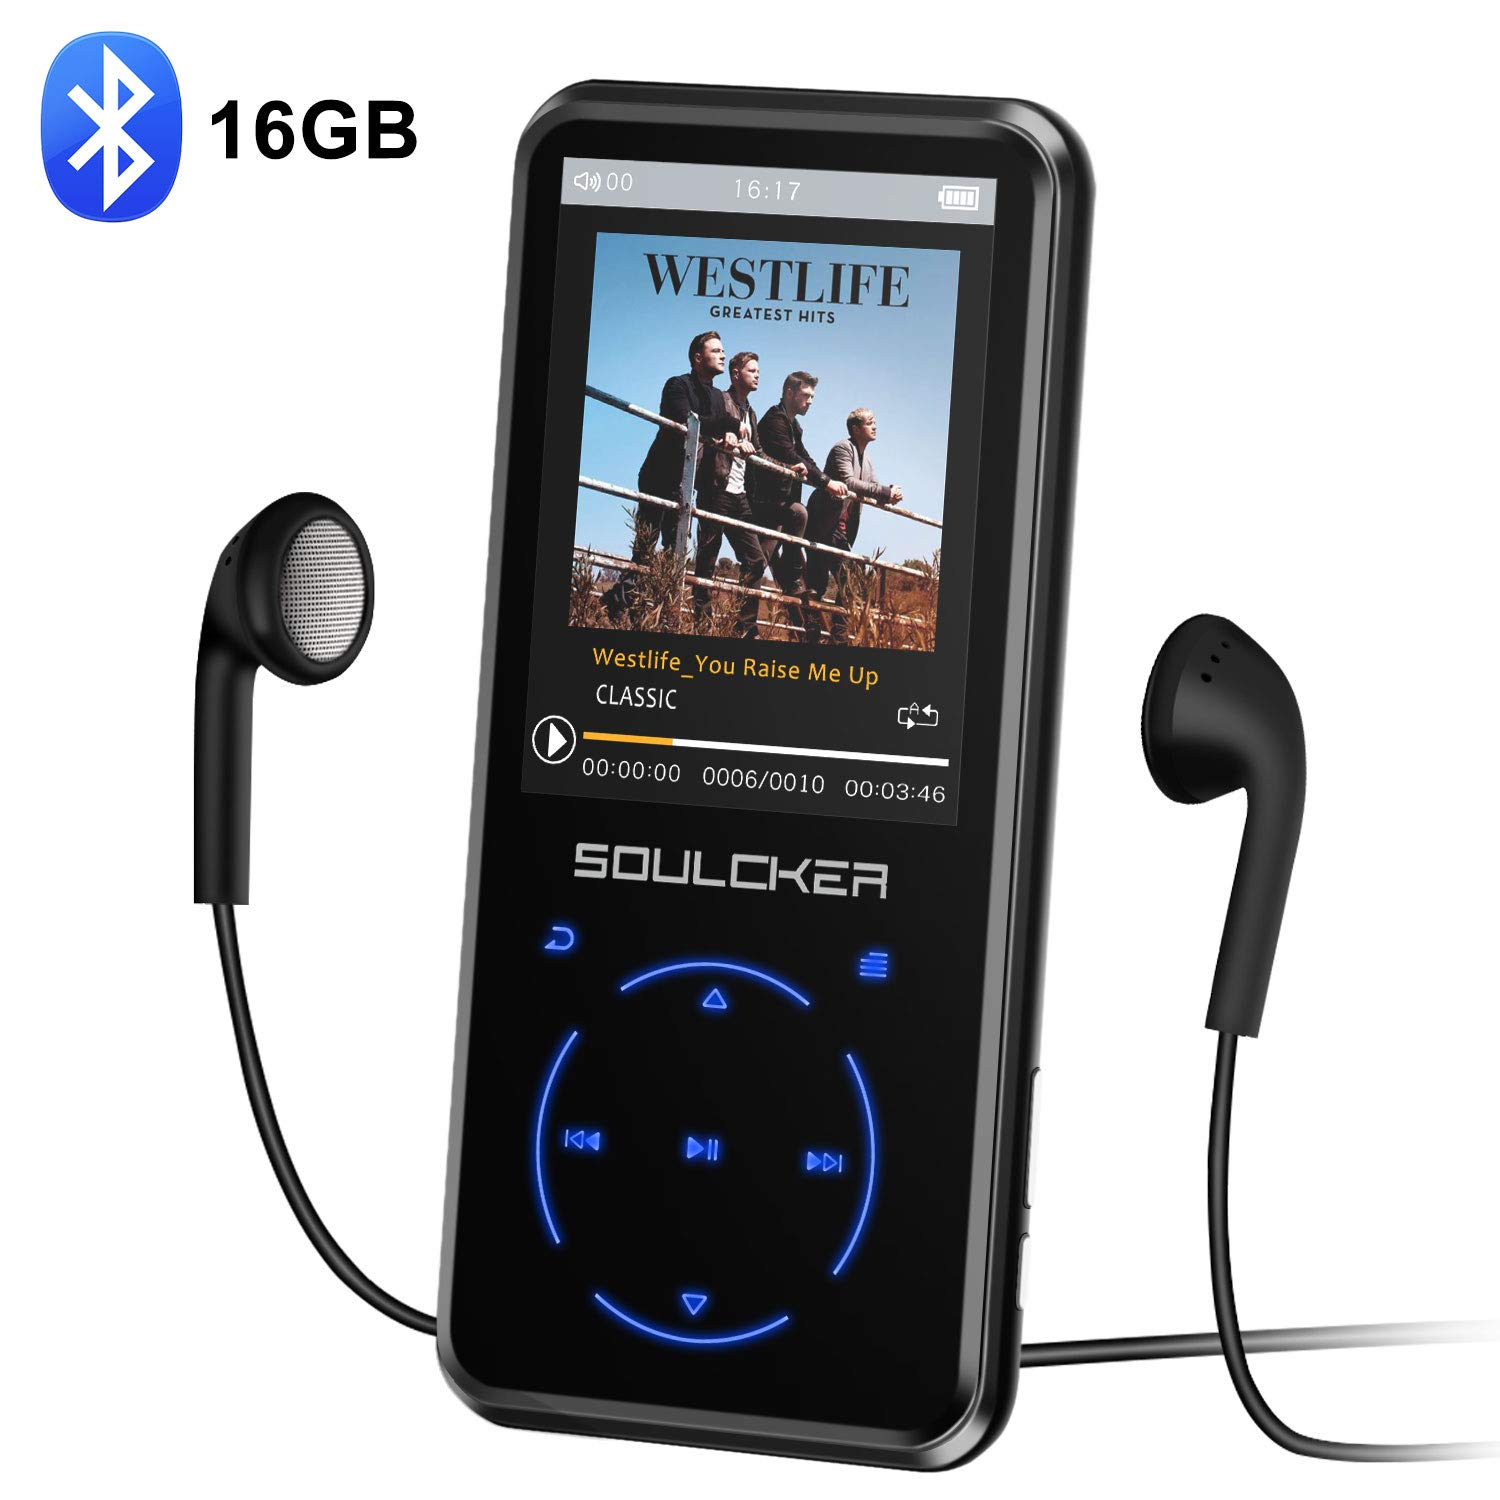 MP3 Player, 16GB MP3 Player with Bluetooth 4 0, Portable HiFi Lossless  Sound MP3 Music Player with FM Radio Voice Recorder E-Book 2 4'' Screen,